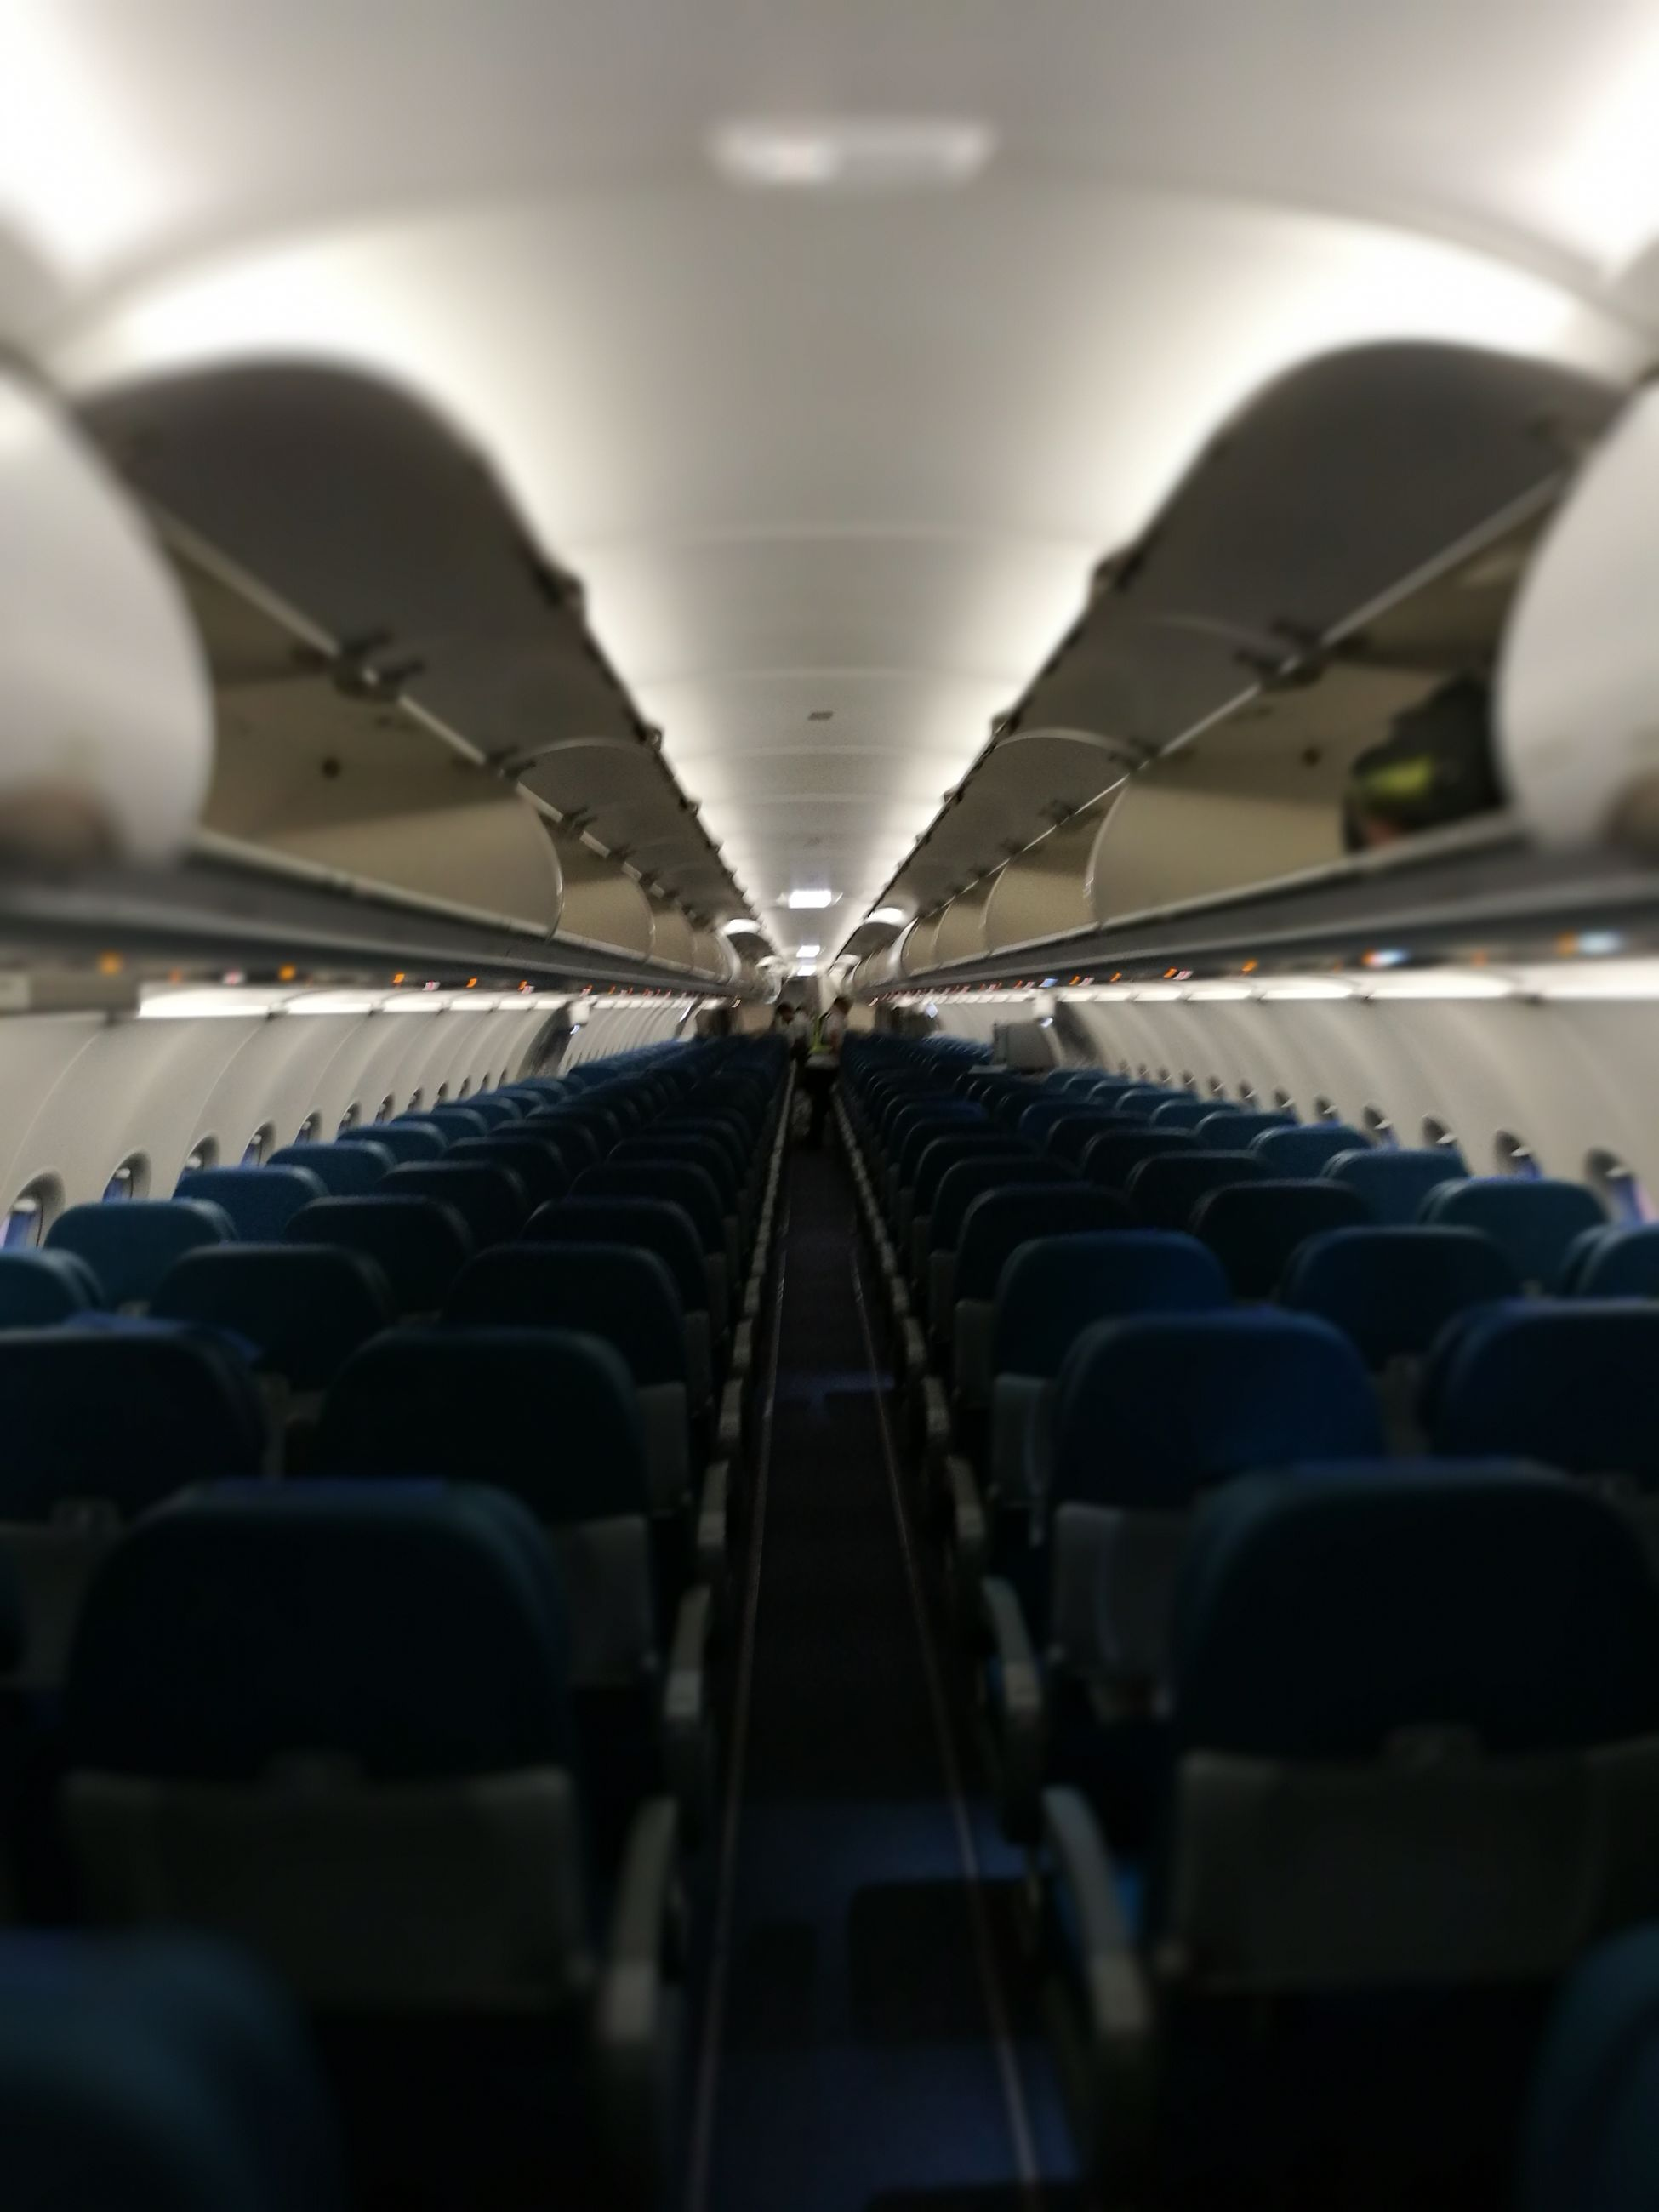 transportation, vehicle interior, indoors, no people, airplane, close-up, day